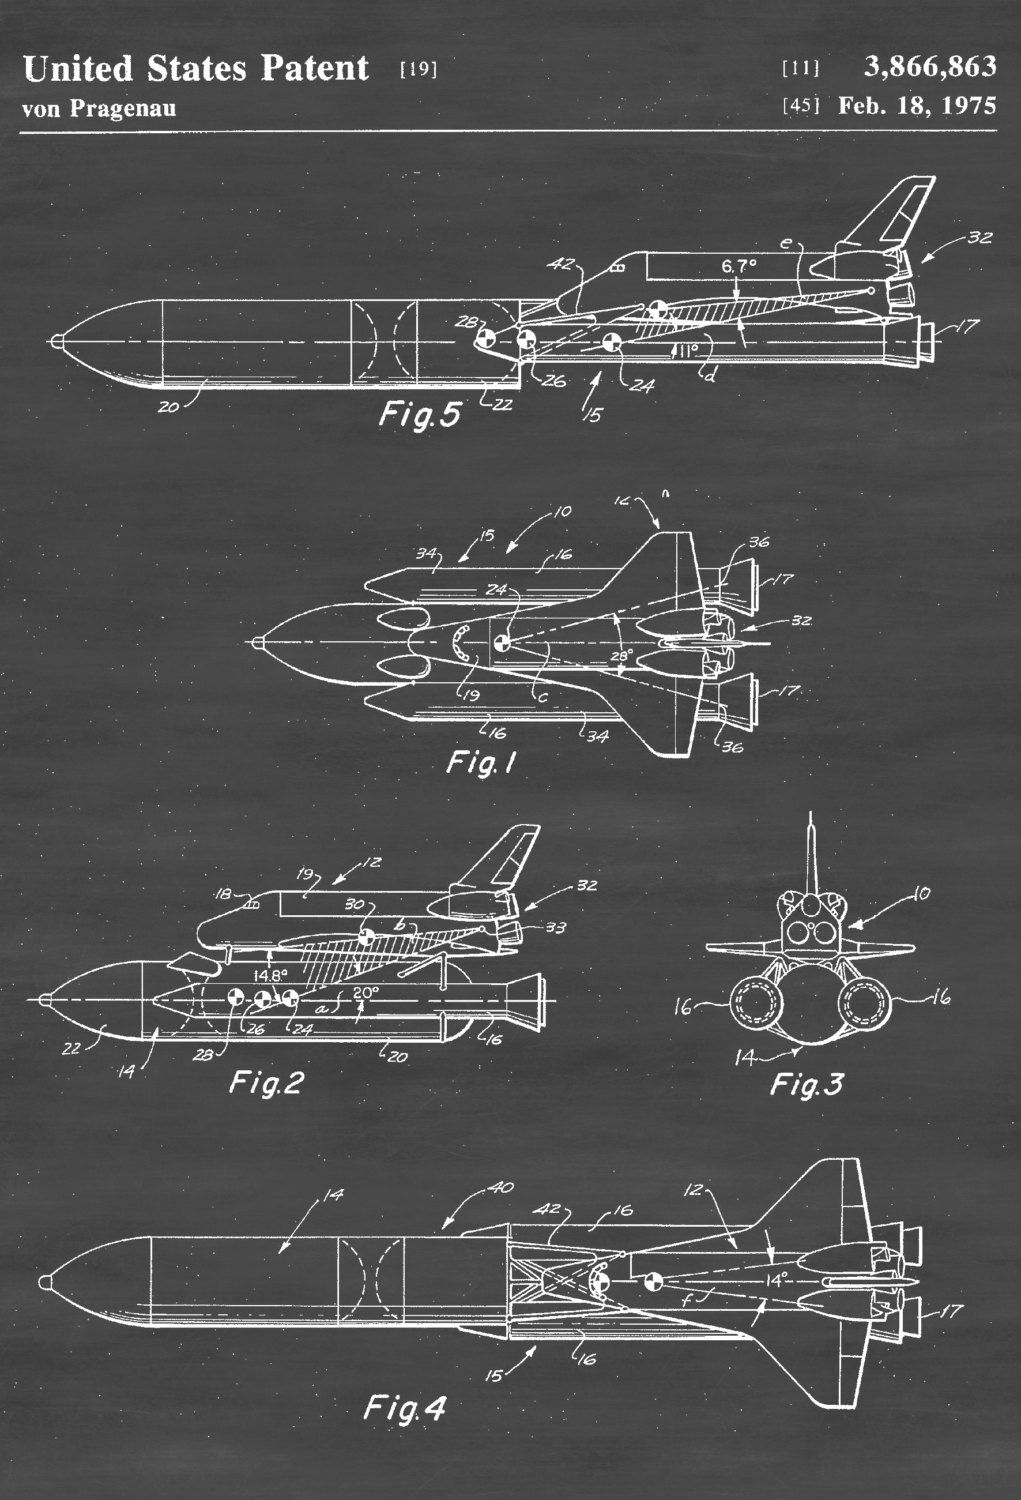 Space shuttle patent aviation art space art shuttle blueprint space shuttle patent aviation art space art shuttle blueprint pilot gift aircraft decor airplane poster by coloredlens on etsy malvernweather Images